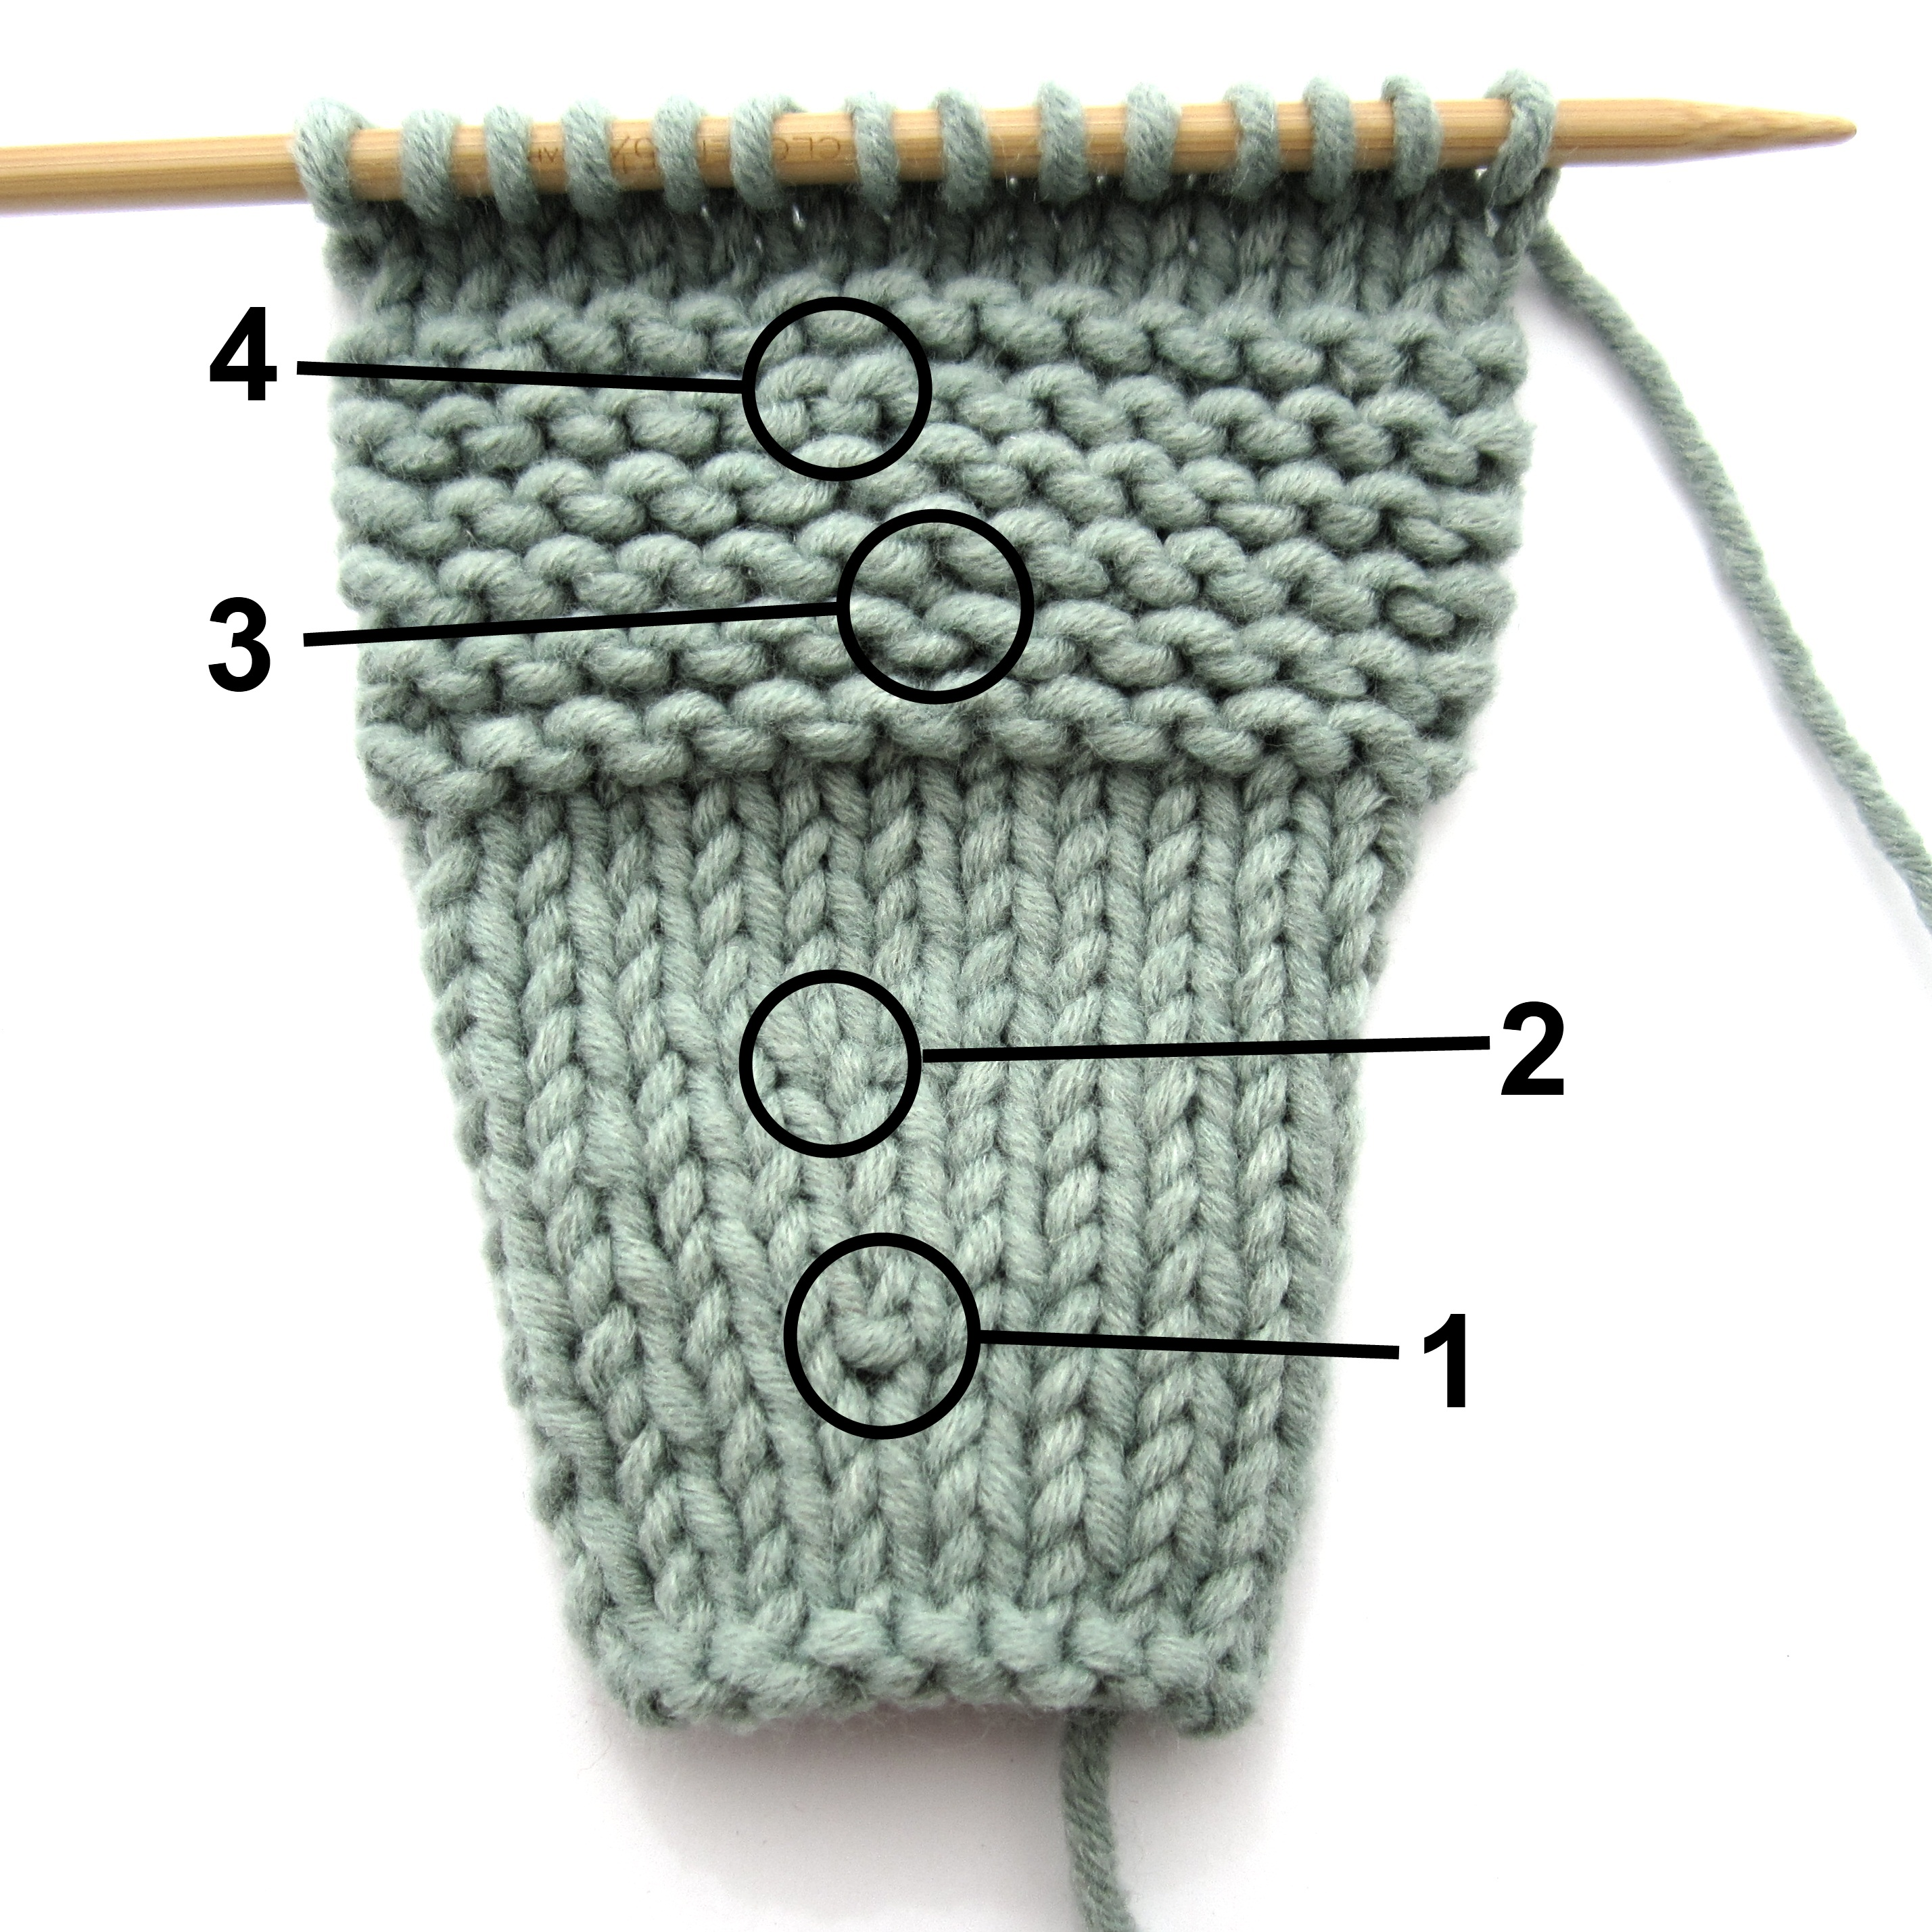 Knitting Kfb Abbreviations : Kfb the forgotten increase